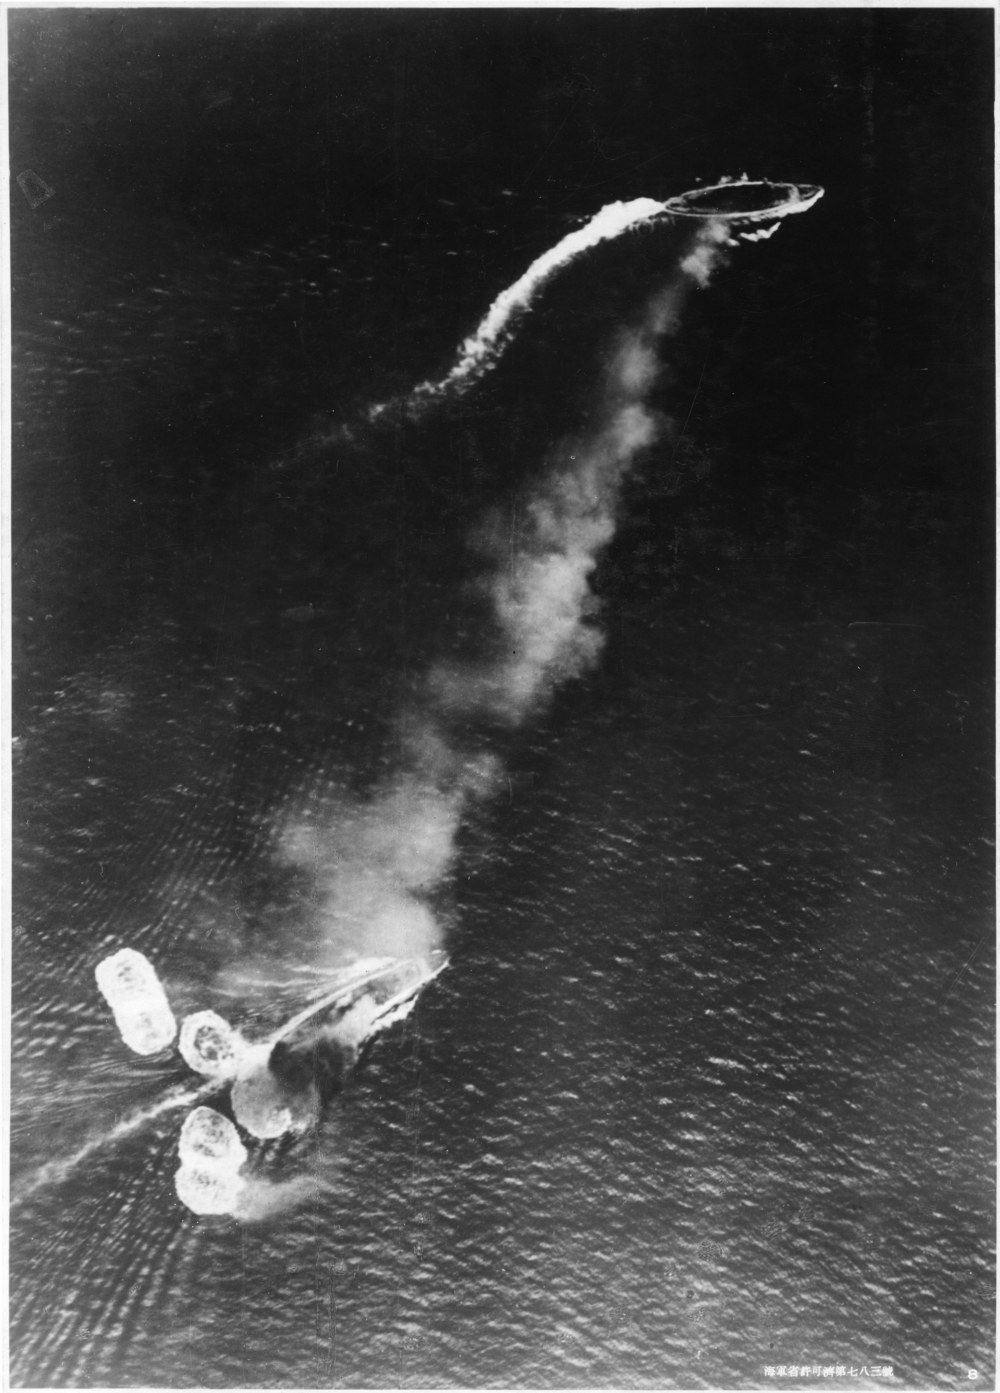 Photograph taken from a Japanese aircraft during the initial high-level bombing attack. Repulse, near the bottom of the view, has just been hit by one bomb and near-missed by several more. Prince of Wales is near the top of the image, generating a considerable amount of smoke. Japanese writing in the lower right states that the photograph was reproduced by authorization of the Navy Ministry.